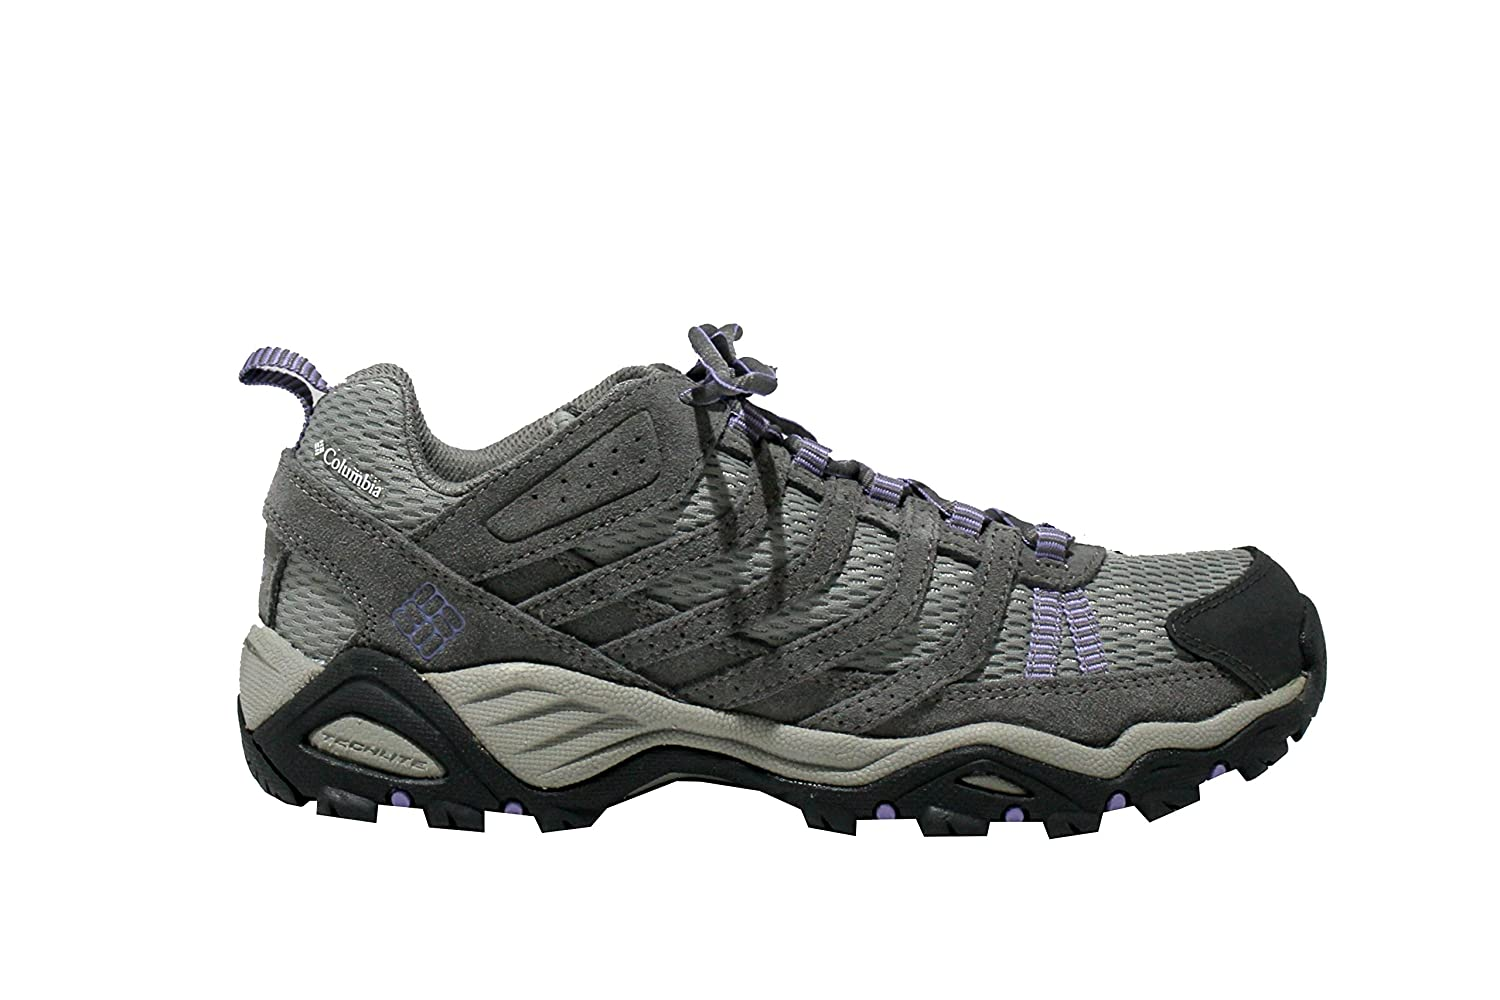 Columbia Women's Jewel Basin Hiking Shoes Sneakers B0798Y5YRZ 8 B(M) US|Dove Purple